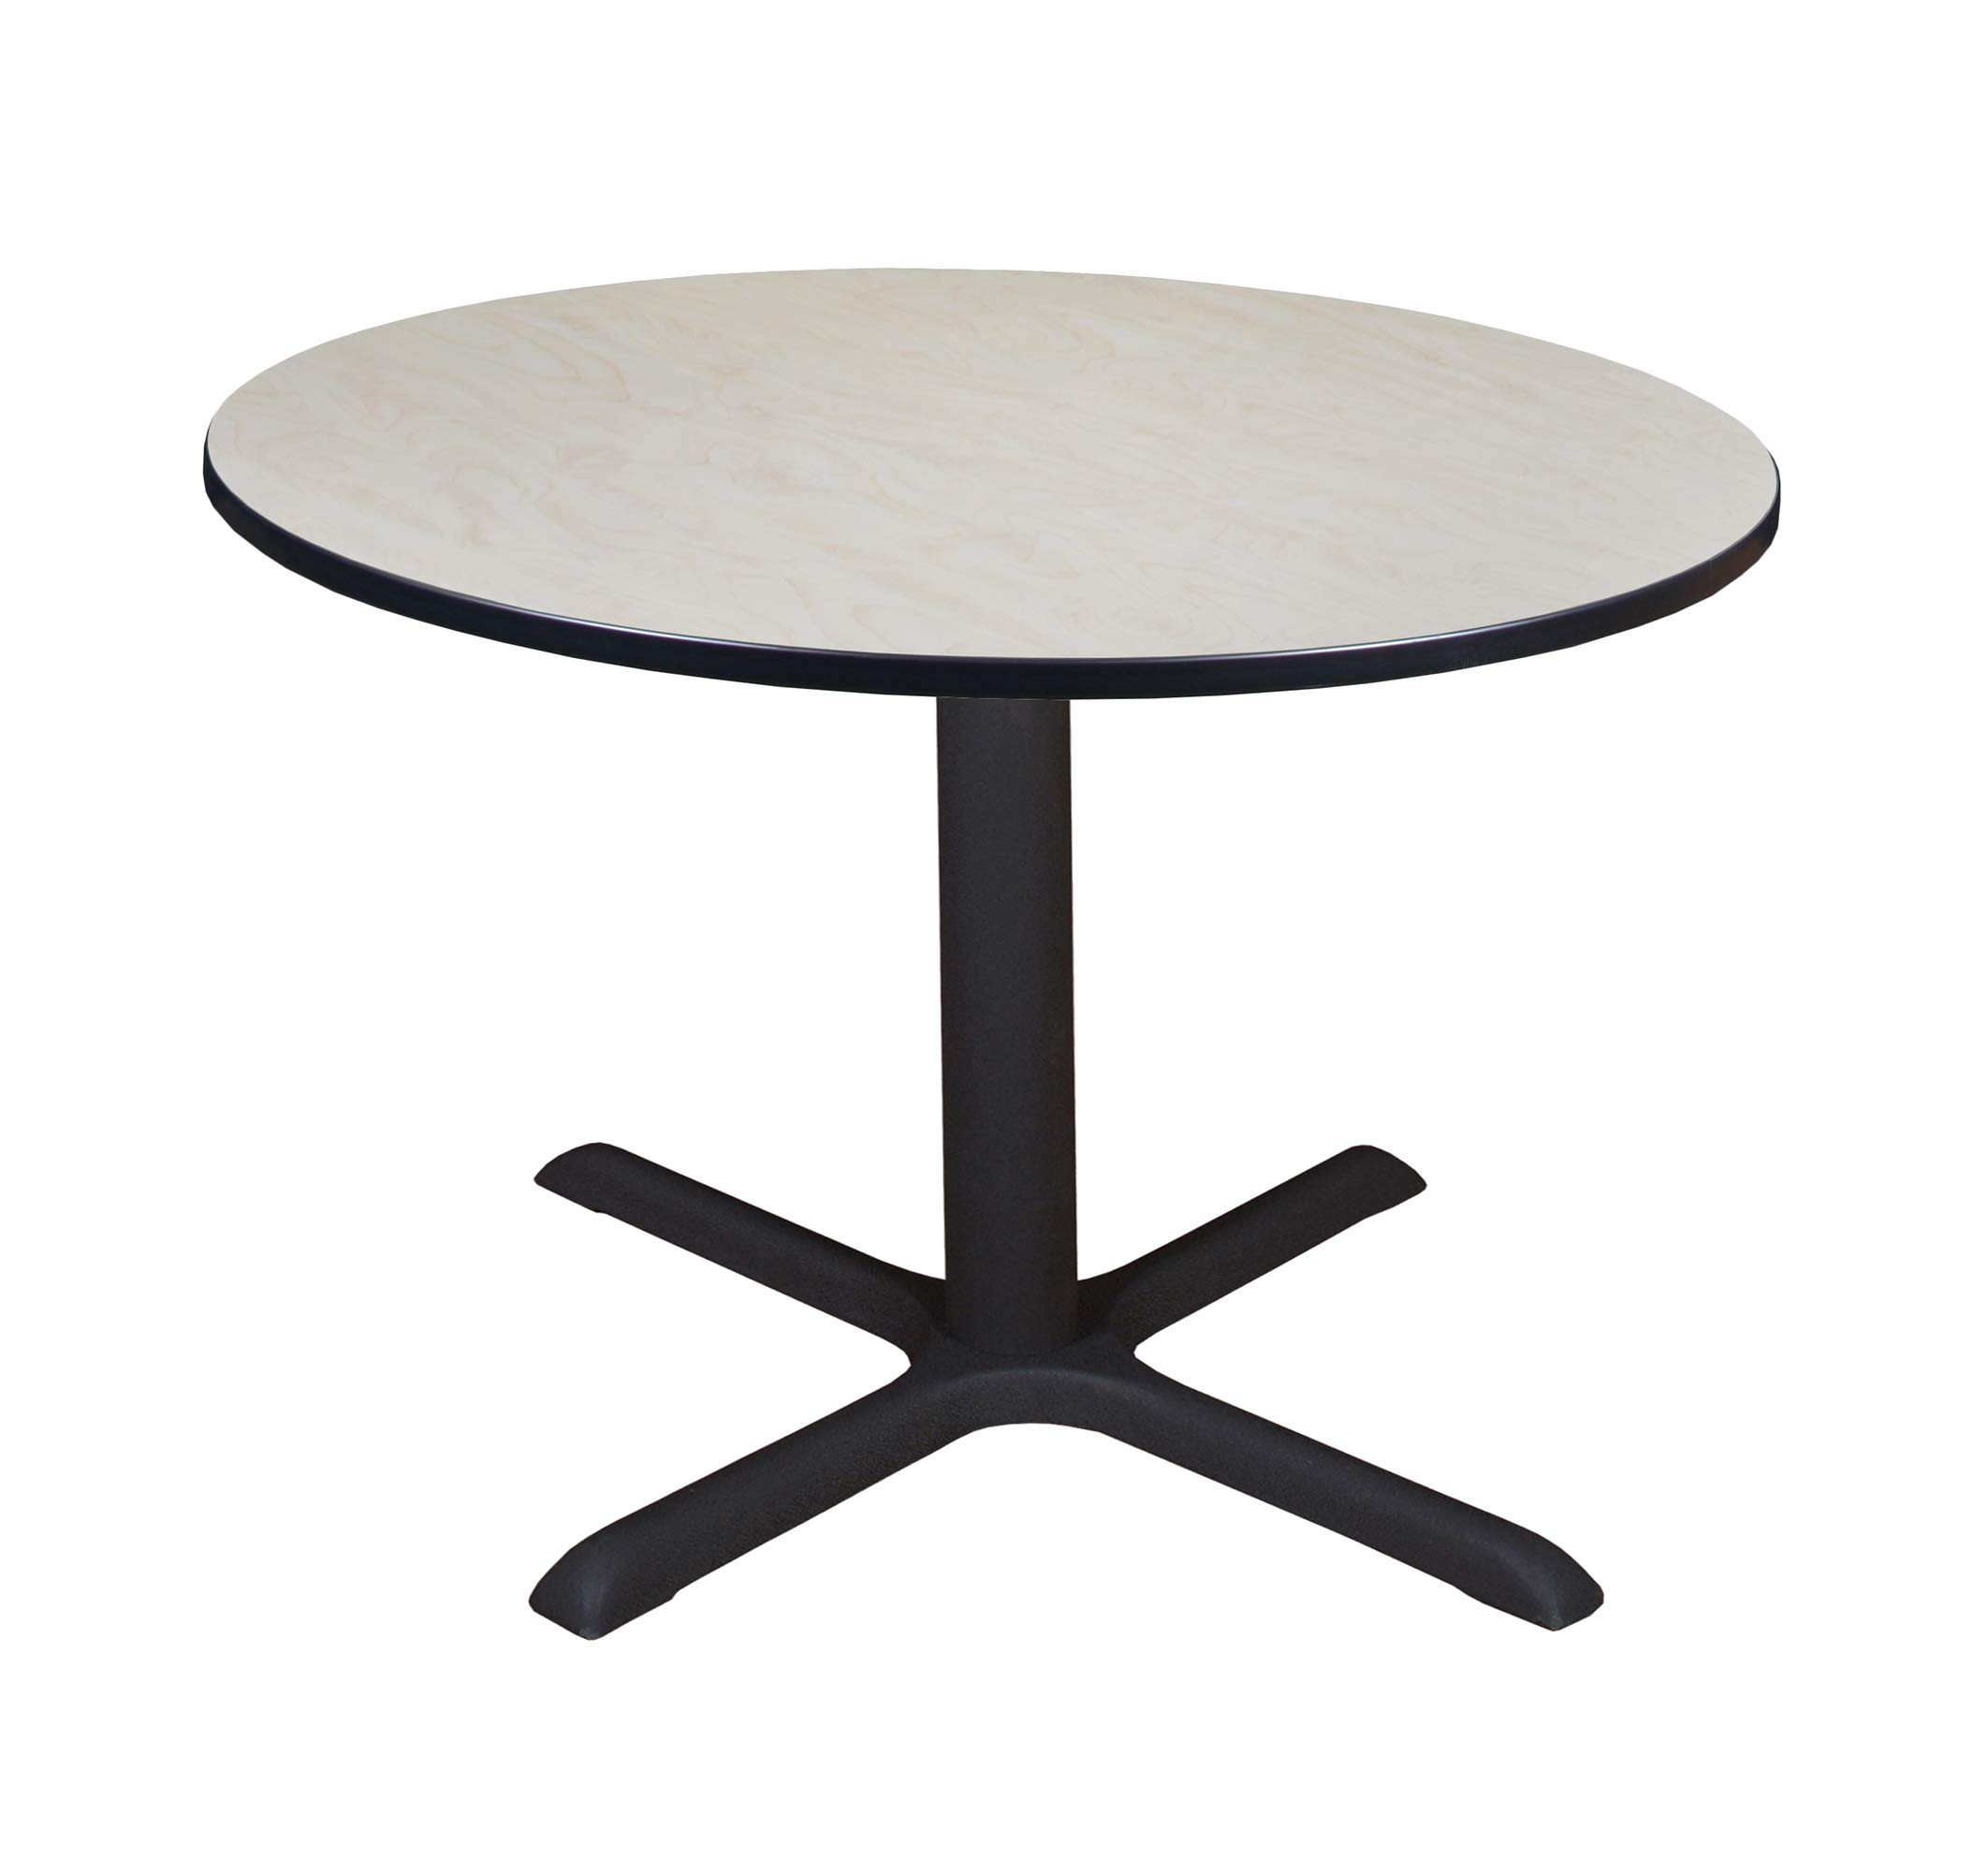 Regency A-TB48RNDLM Cali Round Breakroom Table, 48'', Light Maple by Regency